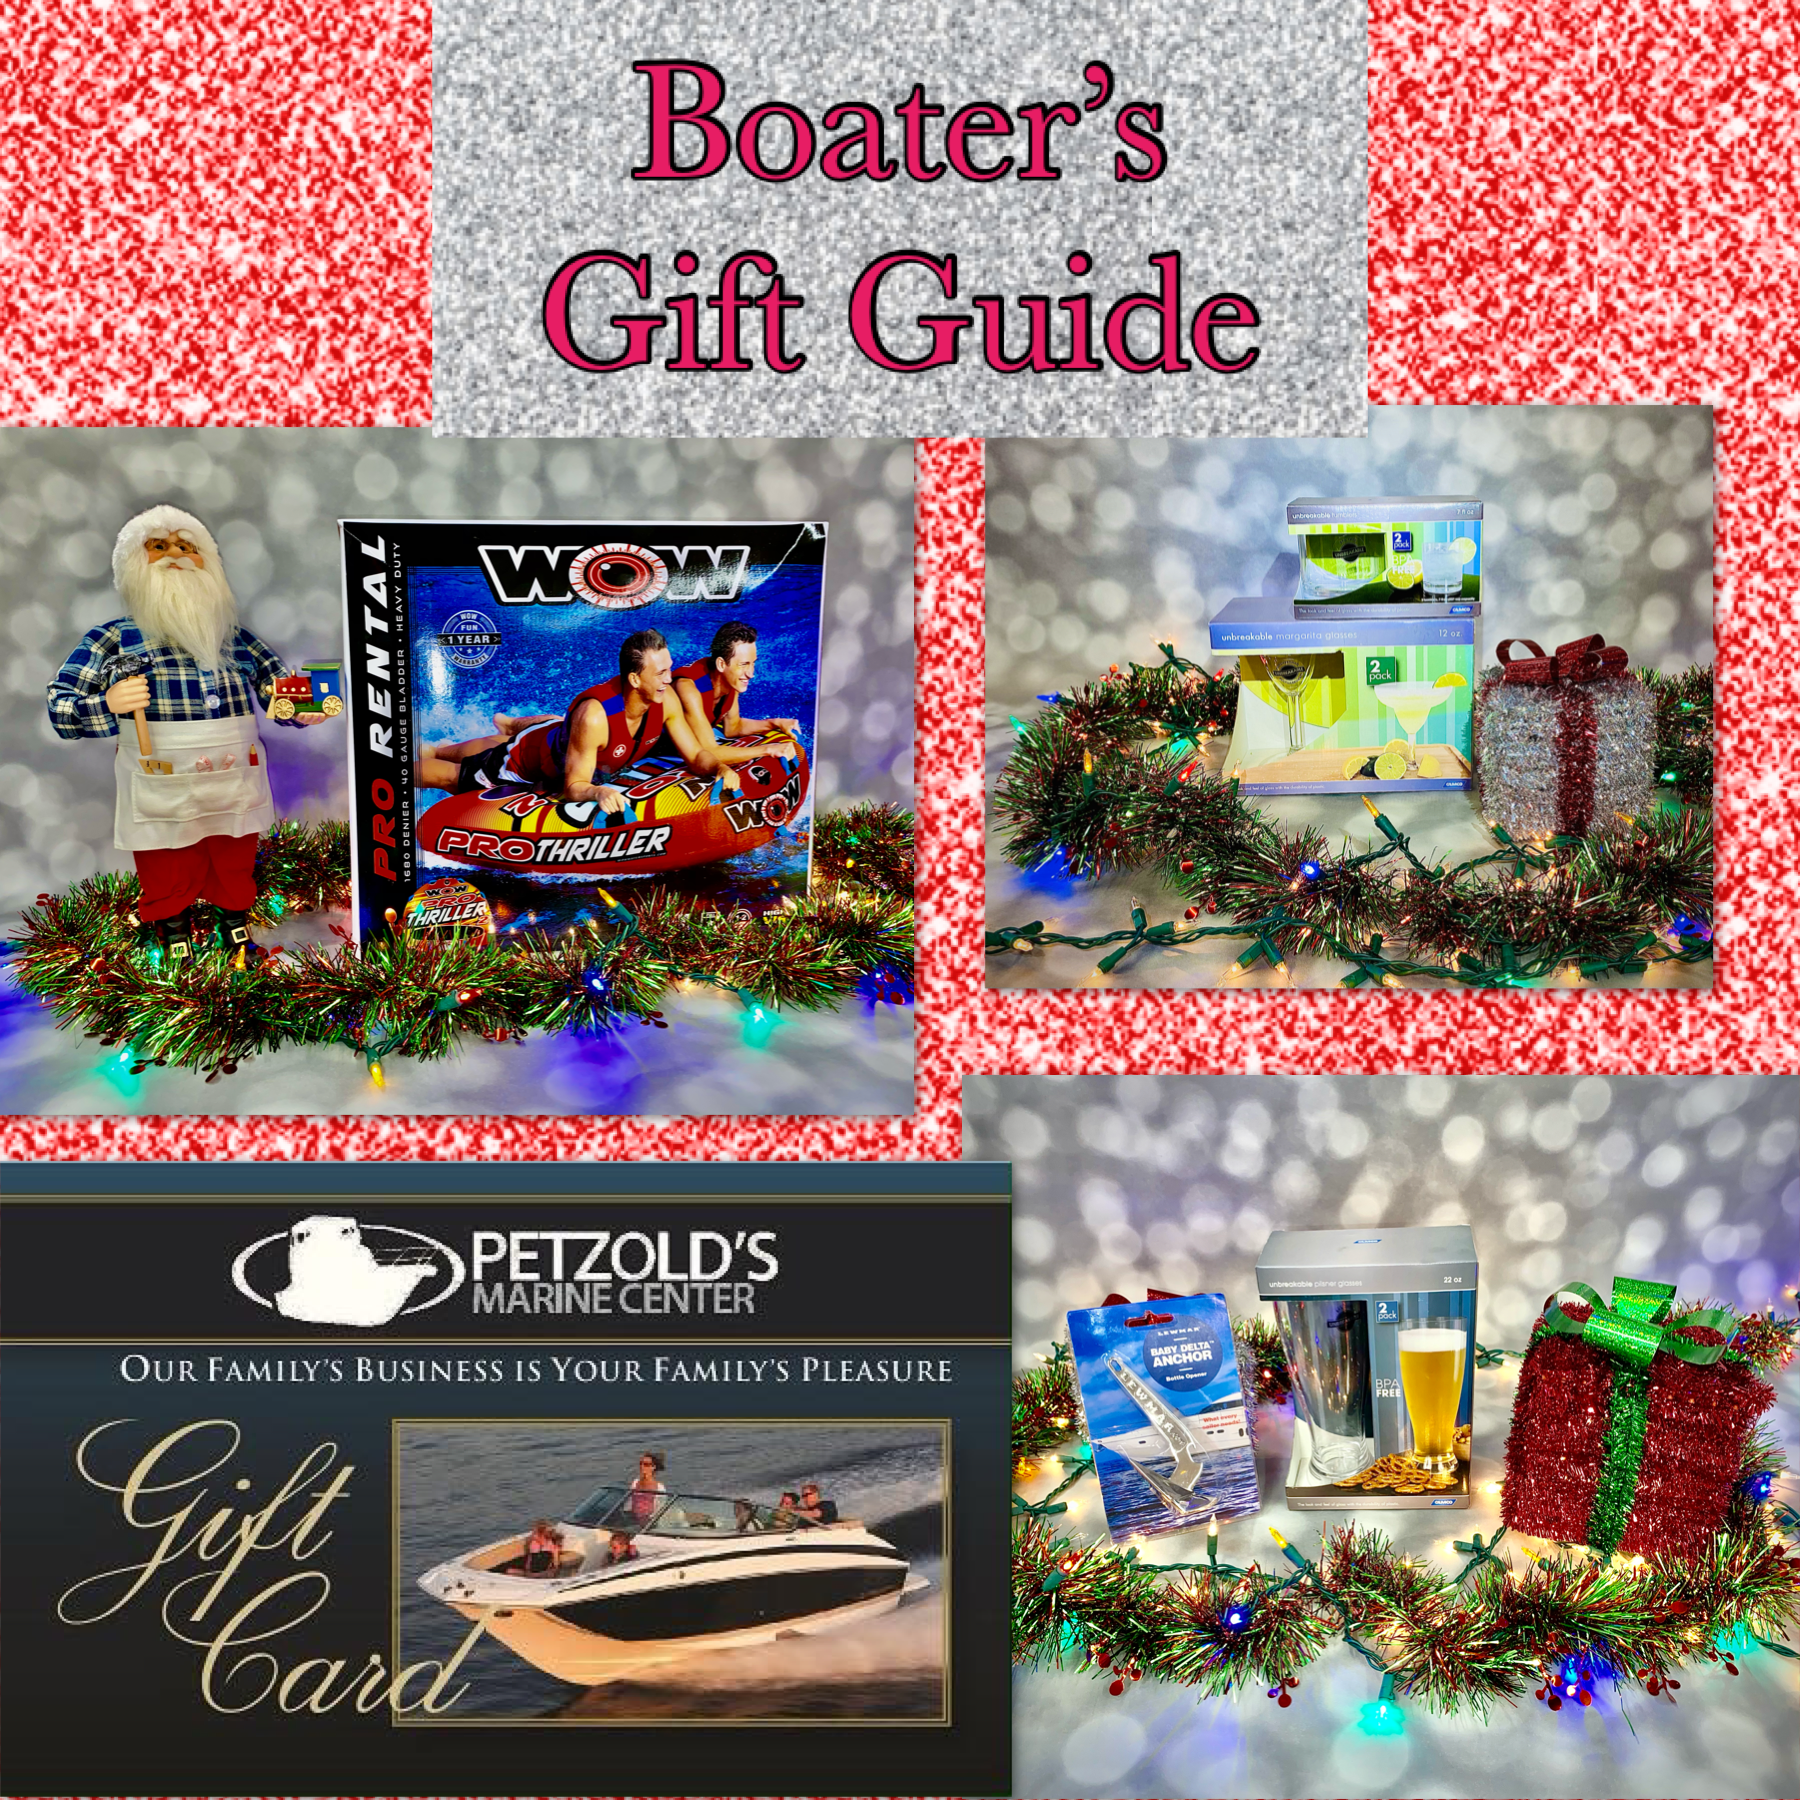 Boater's Gift Guide